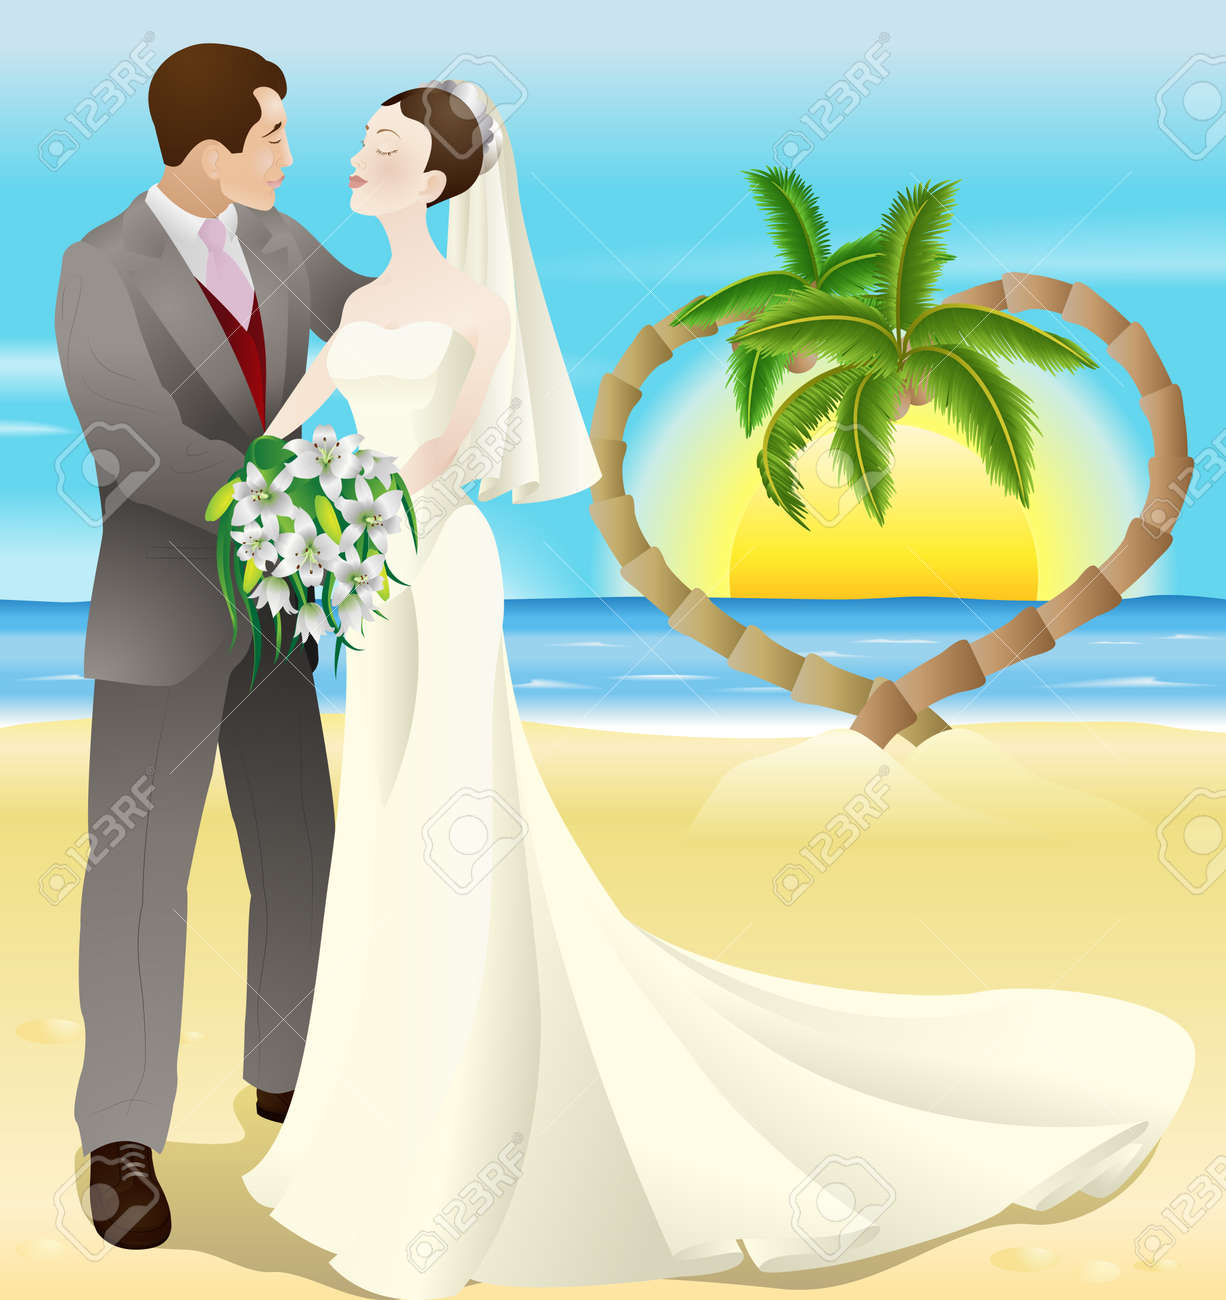 A Tropical Destination Beach Wedding Illustration Bride And Groom Newly Wed On